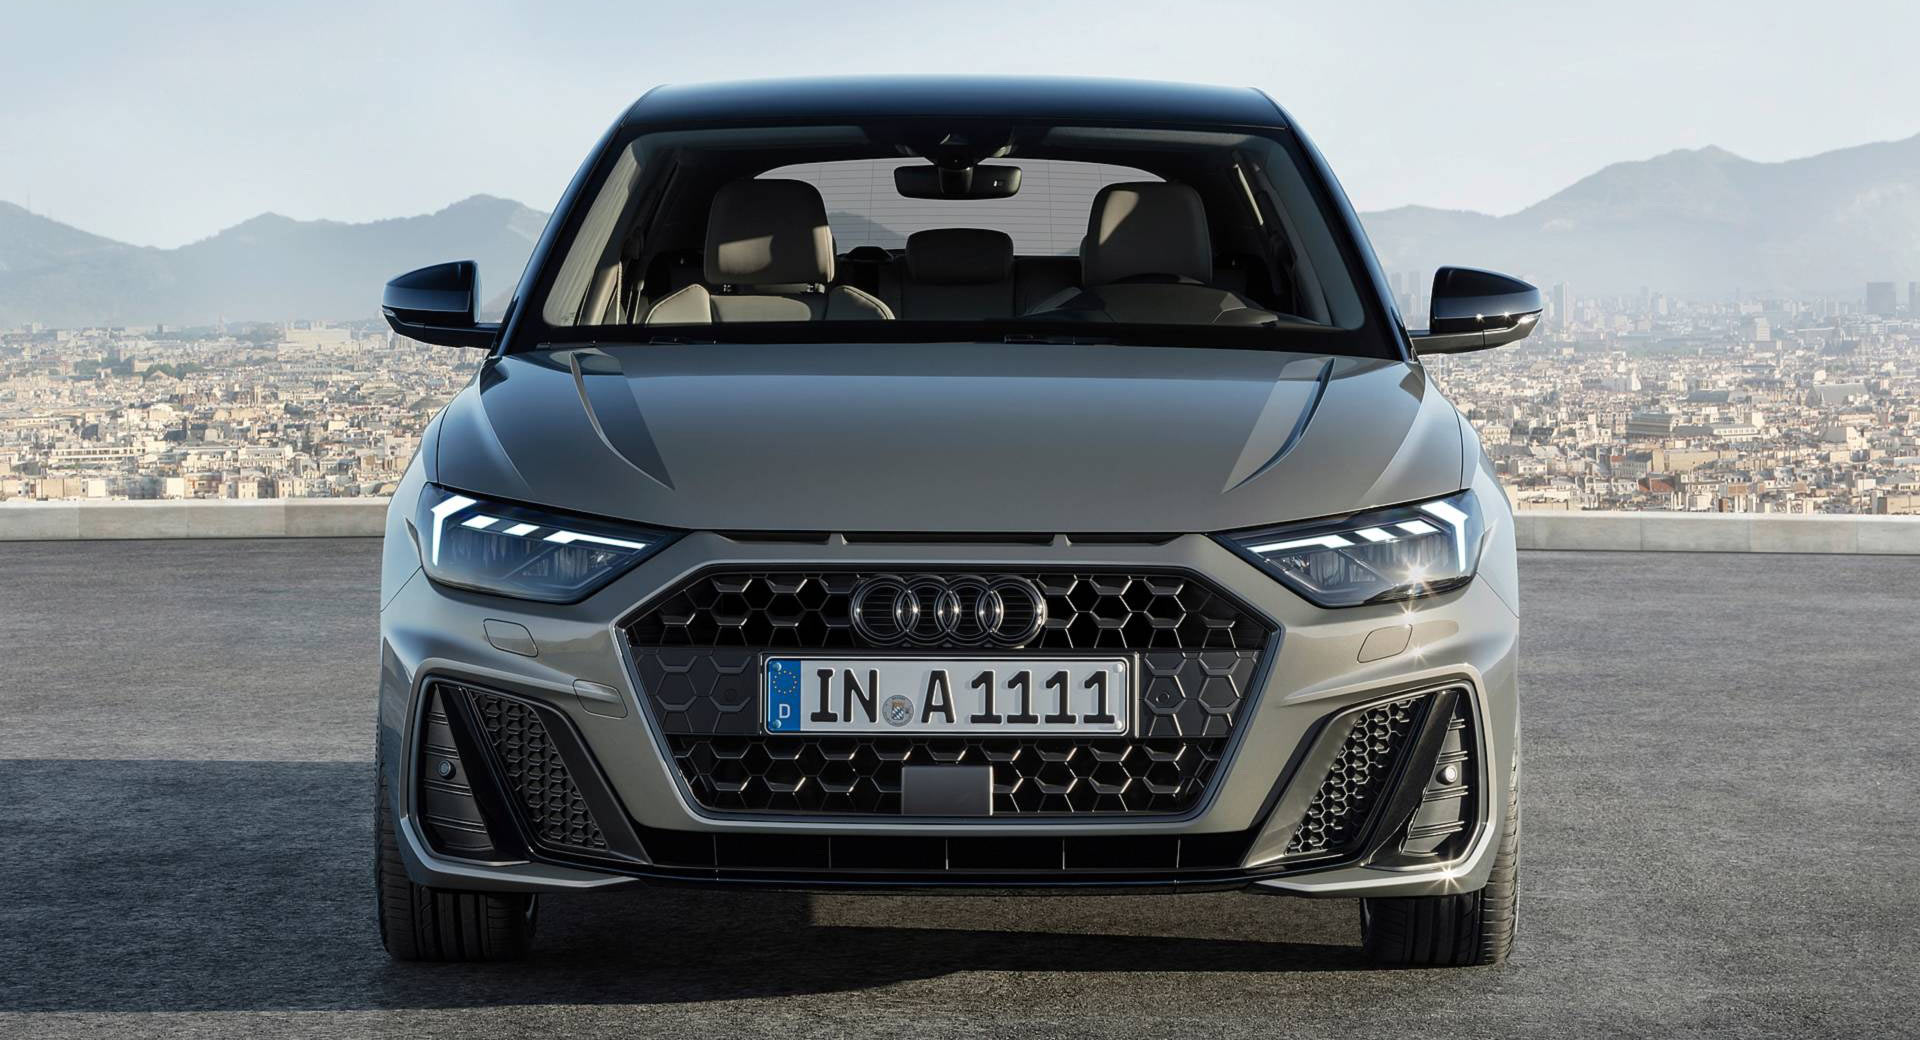 hot audi s1 to arrive in late 2019 with 250hp turbo and quattro awd carscoops. Black Bedroom Furniture Sets. Home Design Ideas